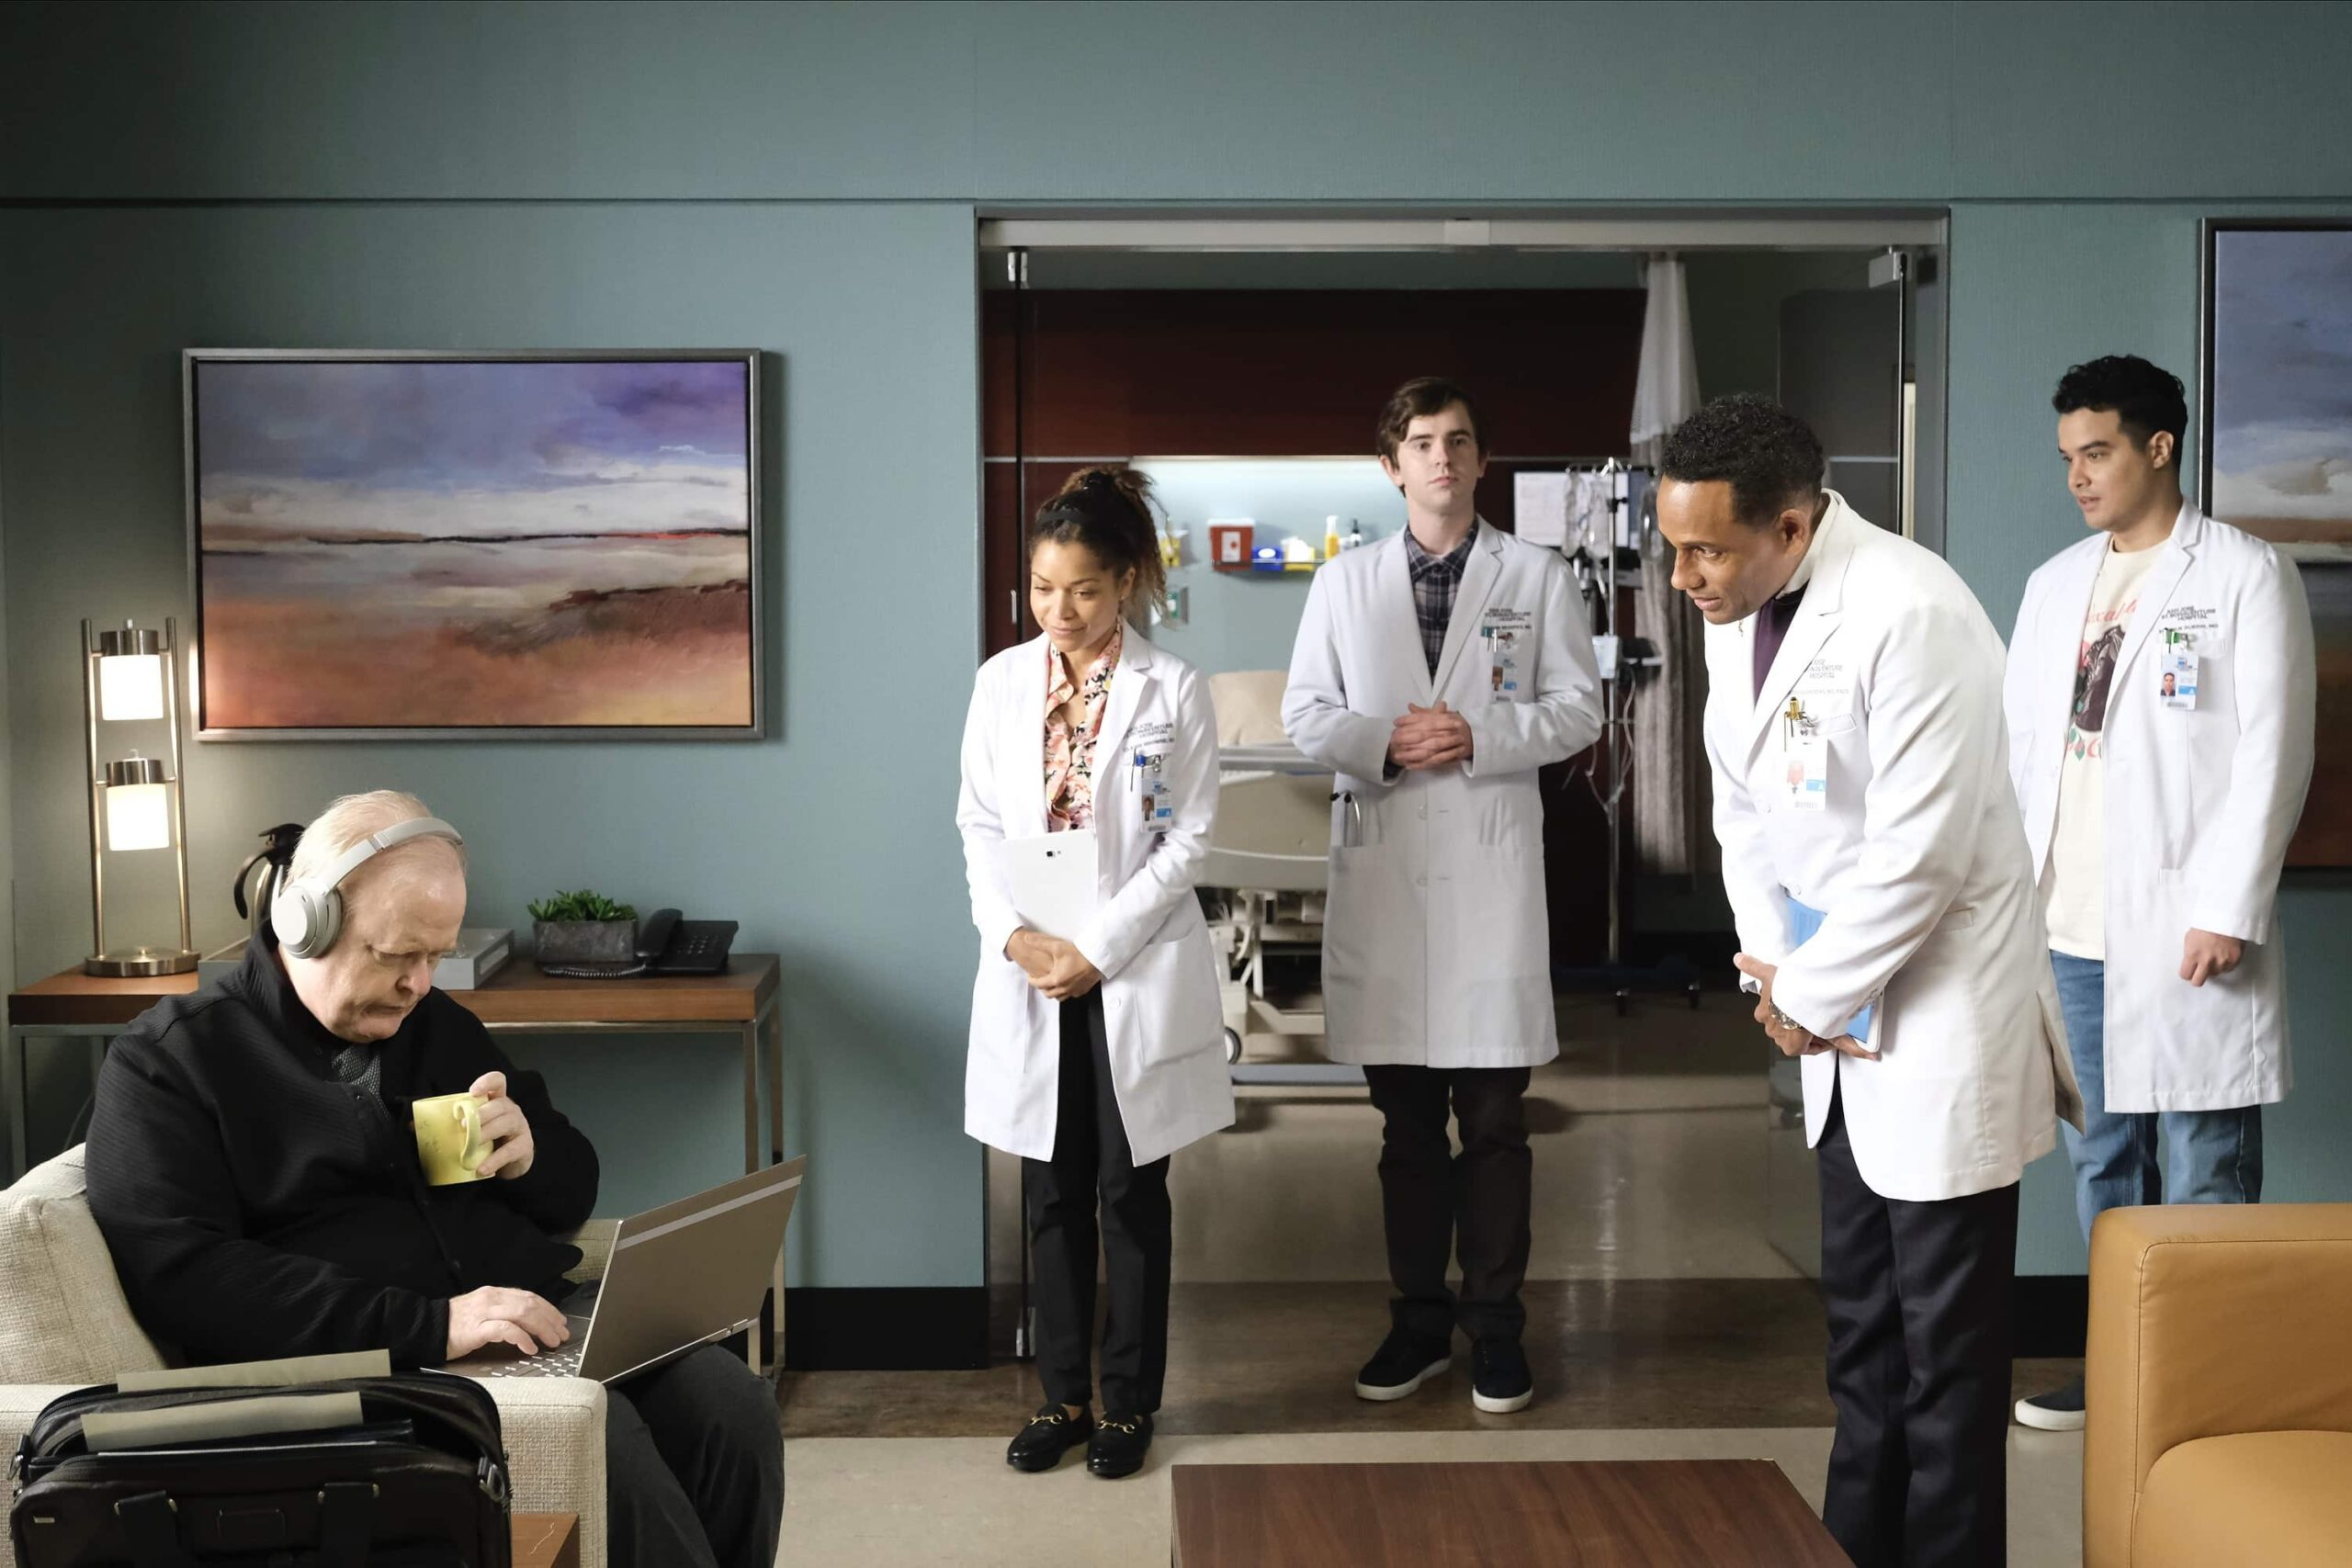 """THE GOOD DOCTOR Season 4 Episode 12 - """"Teeny Blue Eyes"""" – When a renowned surgeon comes to St. Bonaventure for treatment, the team's enthusiasm is quickly overshadowed by the doctor's behavior. After studying his case, Dr. Shaun Murphy sees a pattern he recognizes. Meanwhile, Shaun and Lea are forced to make a life-changing decision that will alter the course of their relationship on an all-new episode of """"The Good Doctor,"""" MONDAY, MARCH 22 (10:00-11:00 p.m. EDT), on ABC. (ABC/Jeff Weddell) CHRISTIAN CLEMENSON, HILL HARPER"""